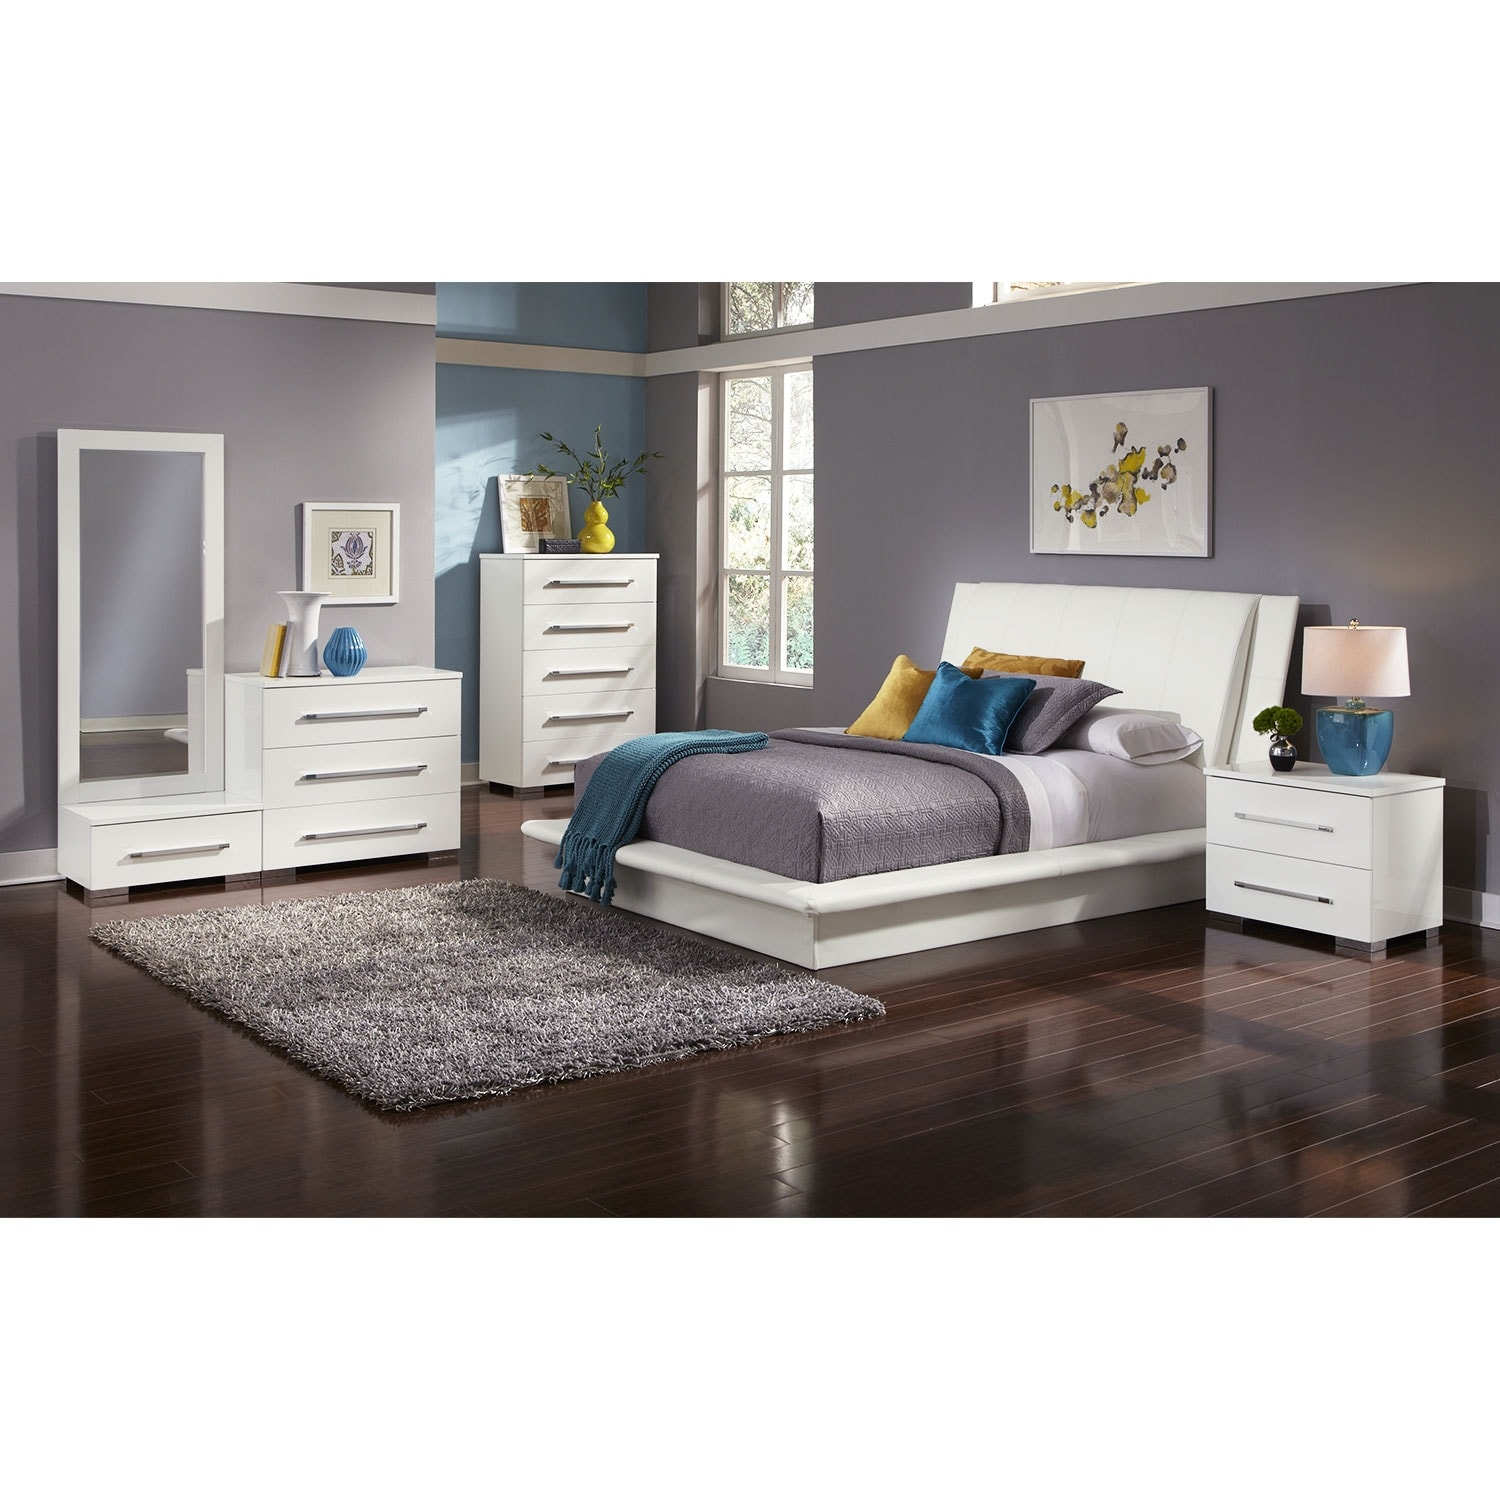 dimora bedroom set%0A good resume names